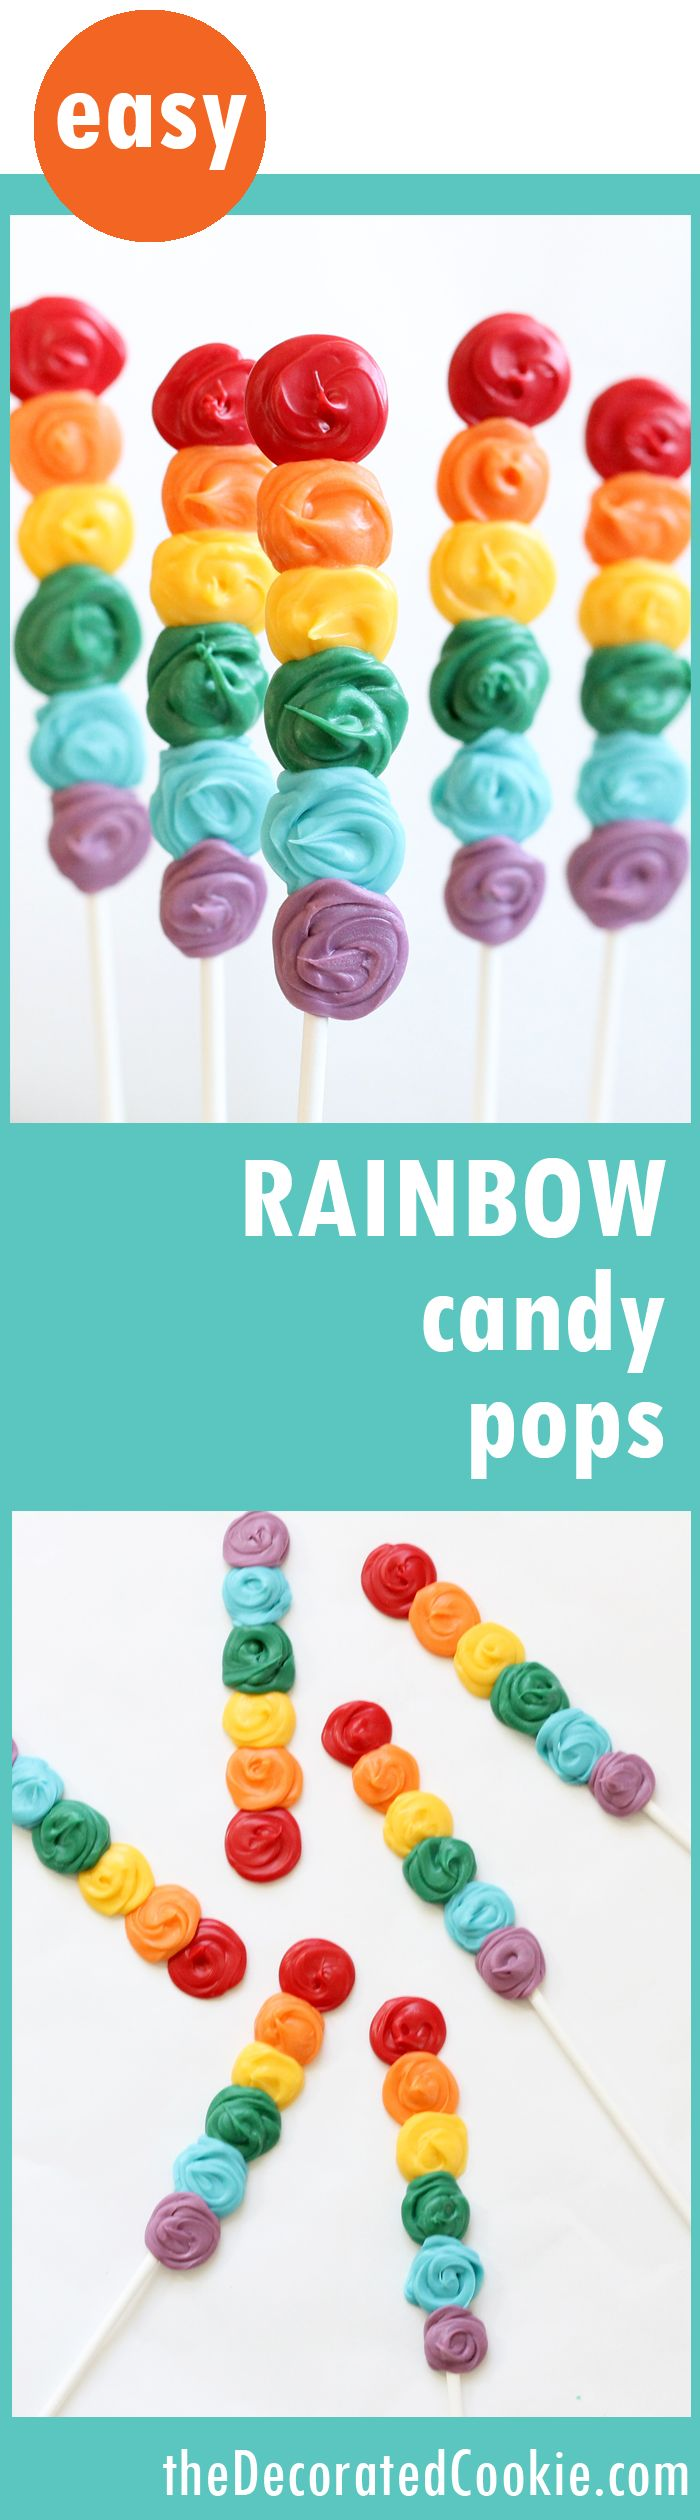 EASY rainbow candy pops